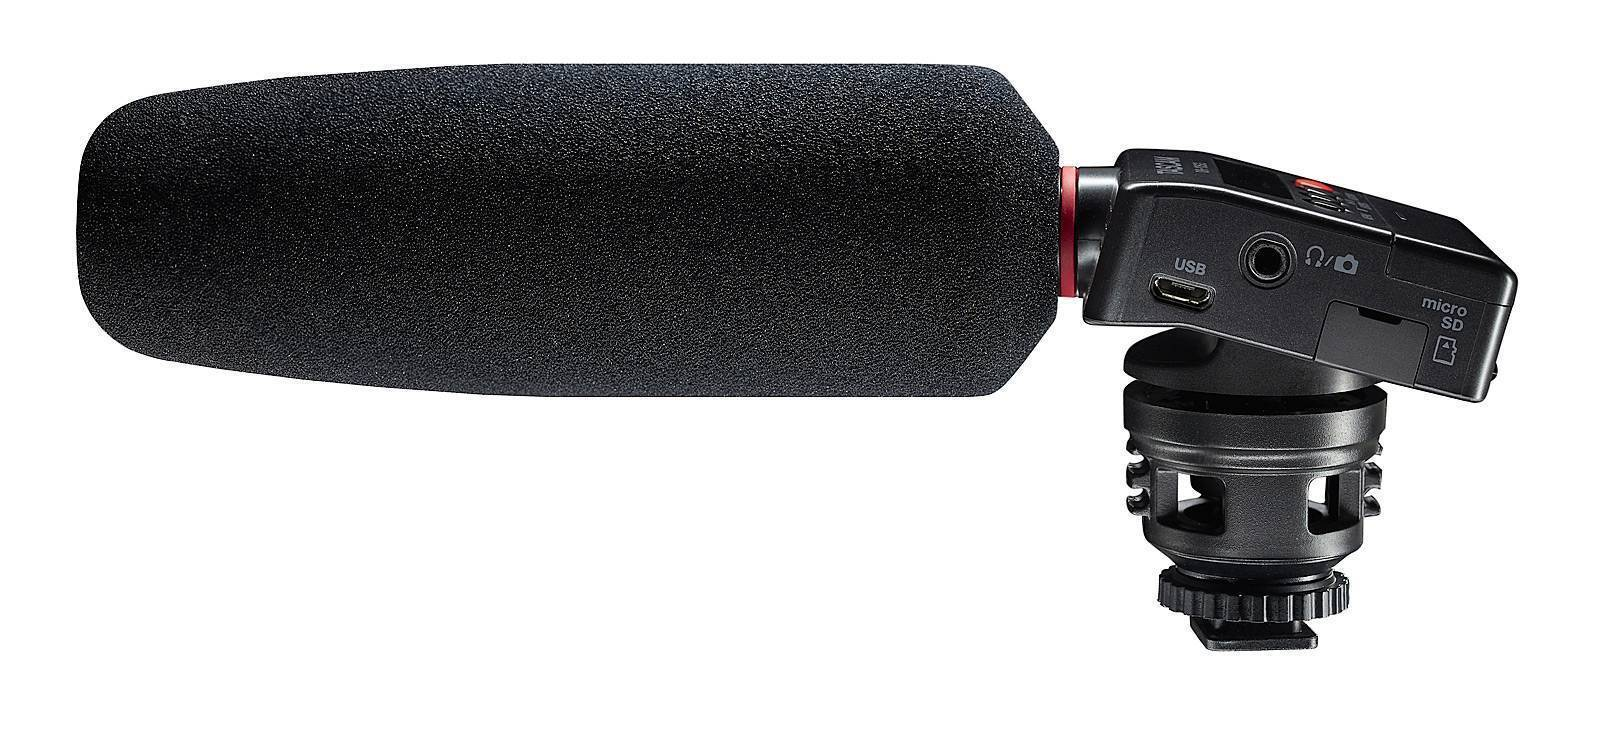 DR-10SG Camera-mountable audio recorder with shotgun microphone